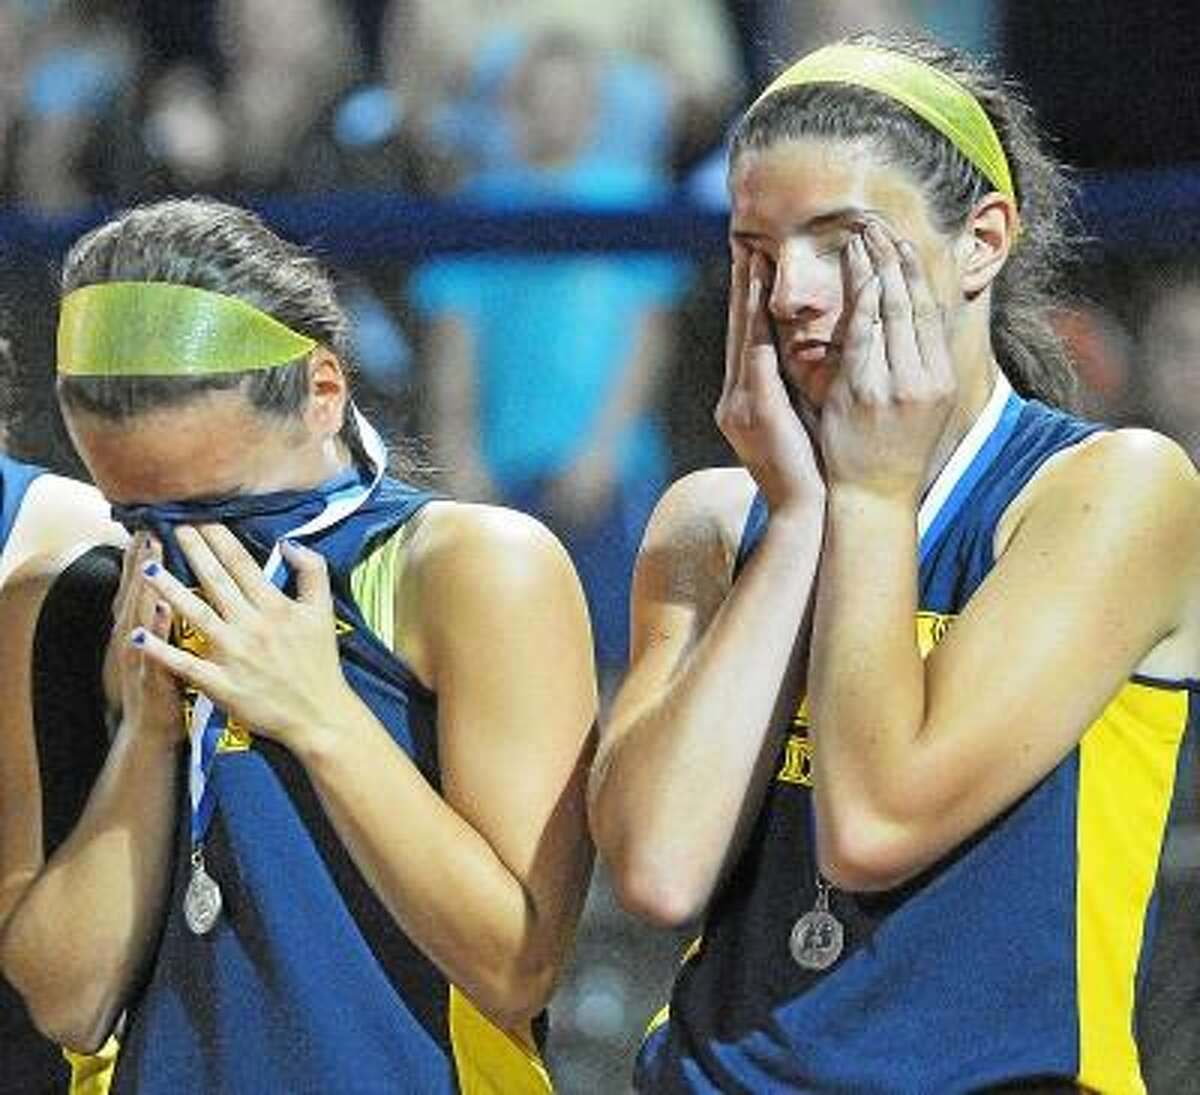 Catherine Avalone/The Middletown Press Mercy third baseman Stephanie Mangiameli and pitcher Mary Adametz upset following their 1-0 loss against Southington at Frank Biondi Softball Field at West Haven High School in the Class LL State Championship game Sunday night.